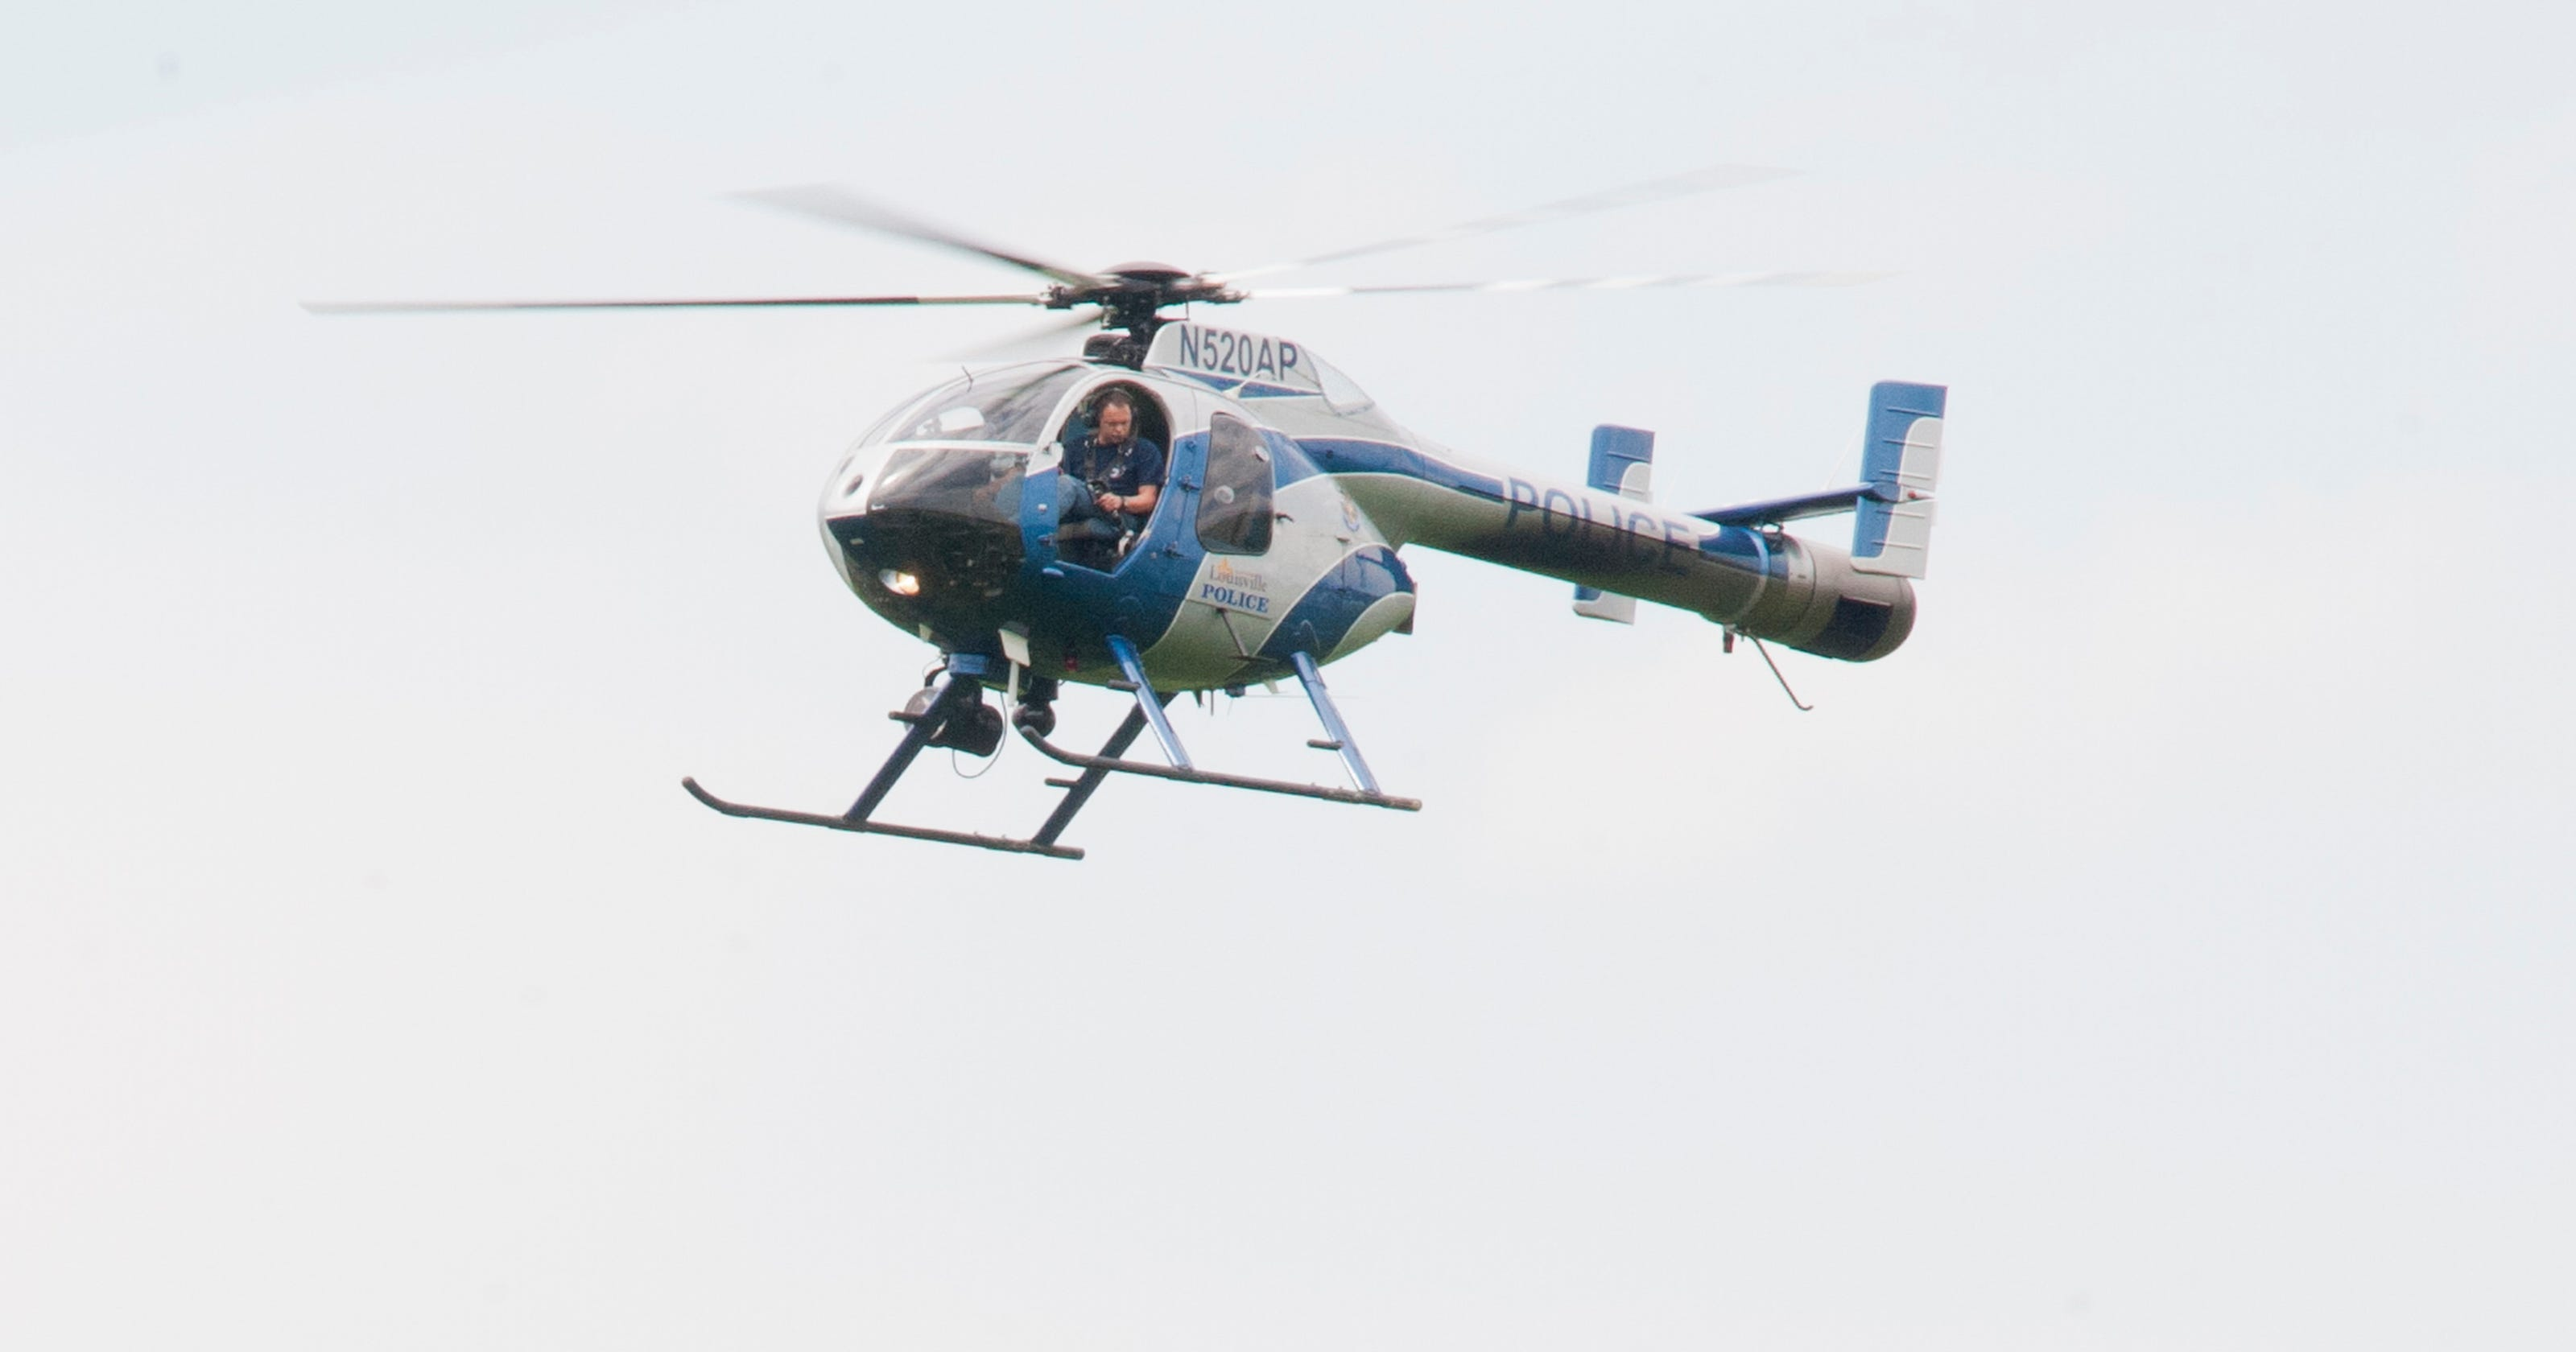 Police helicopter was needed but down for repairs during